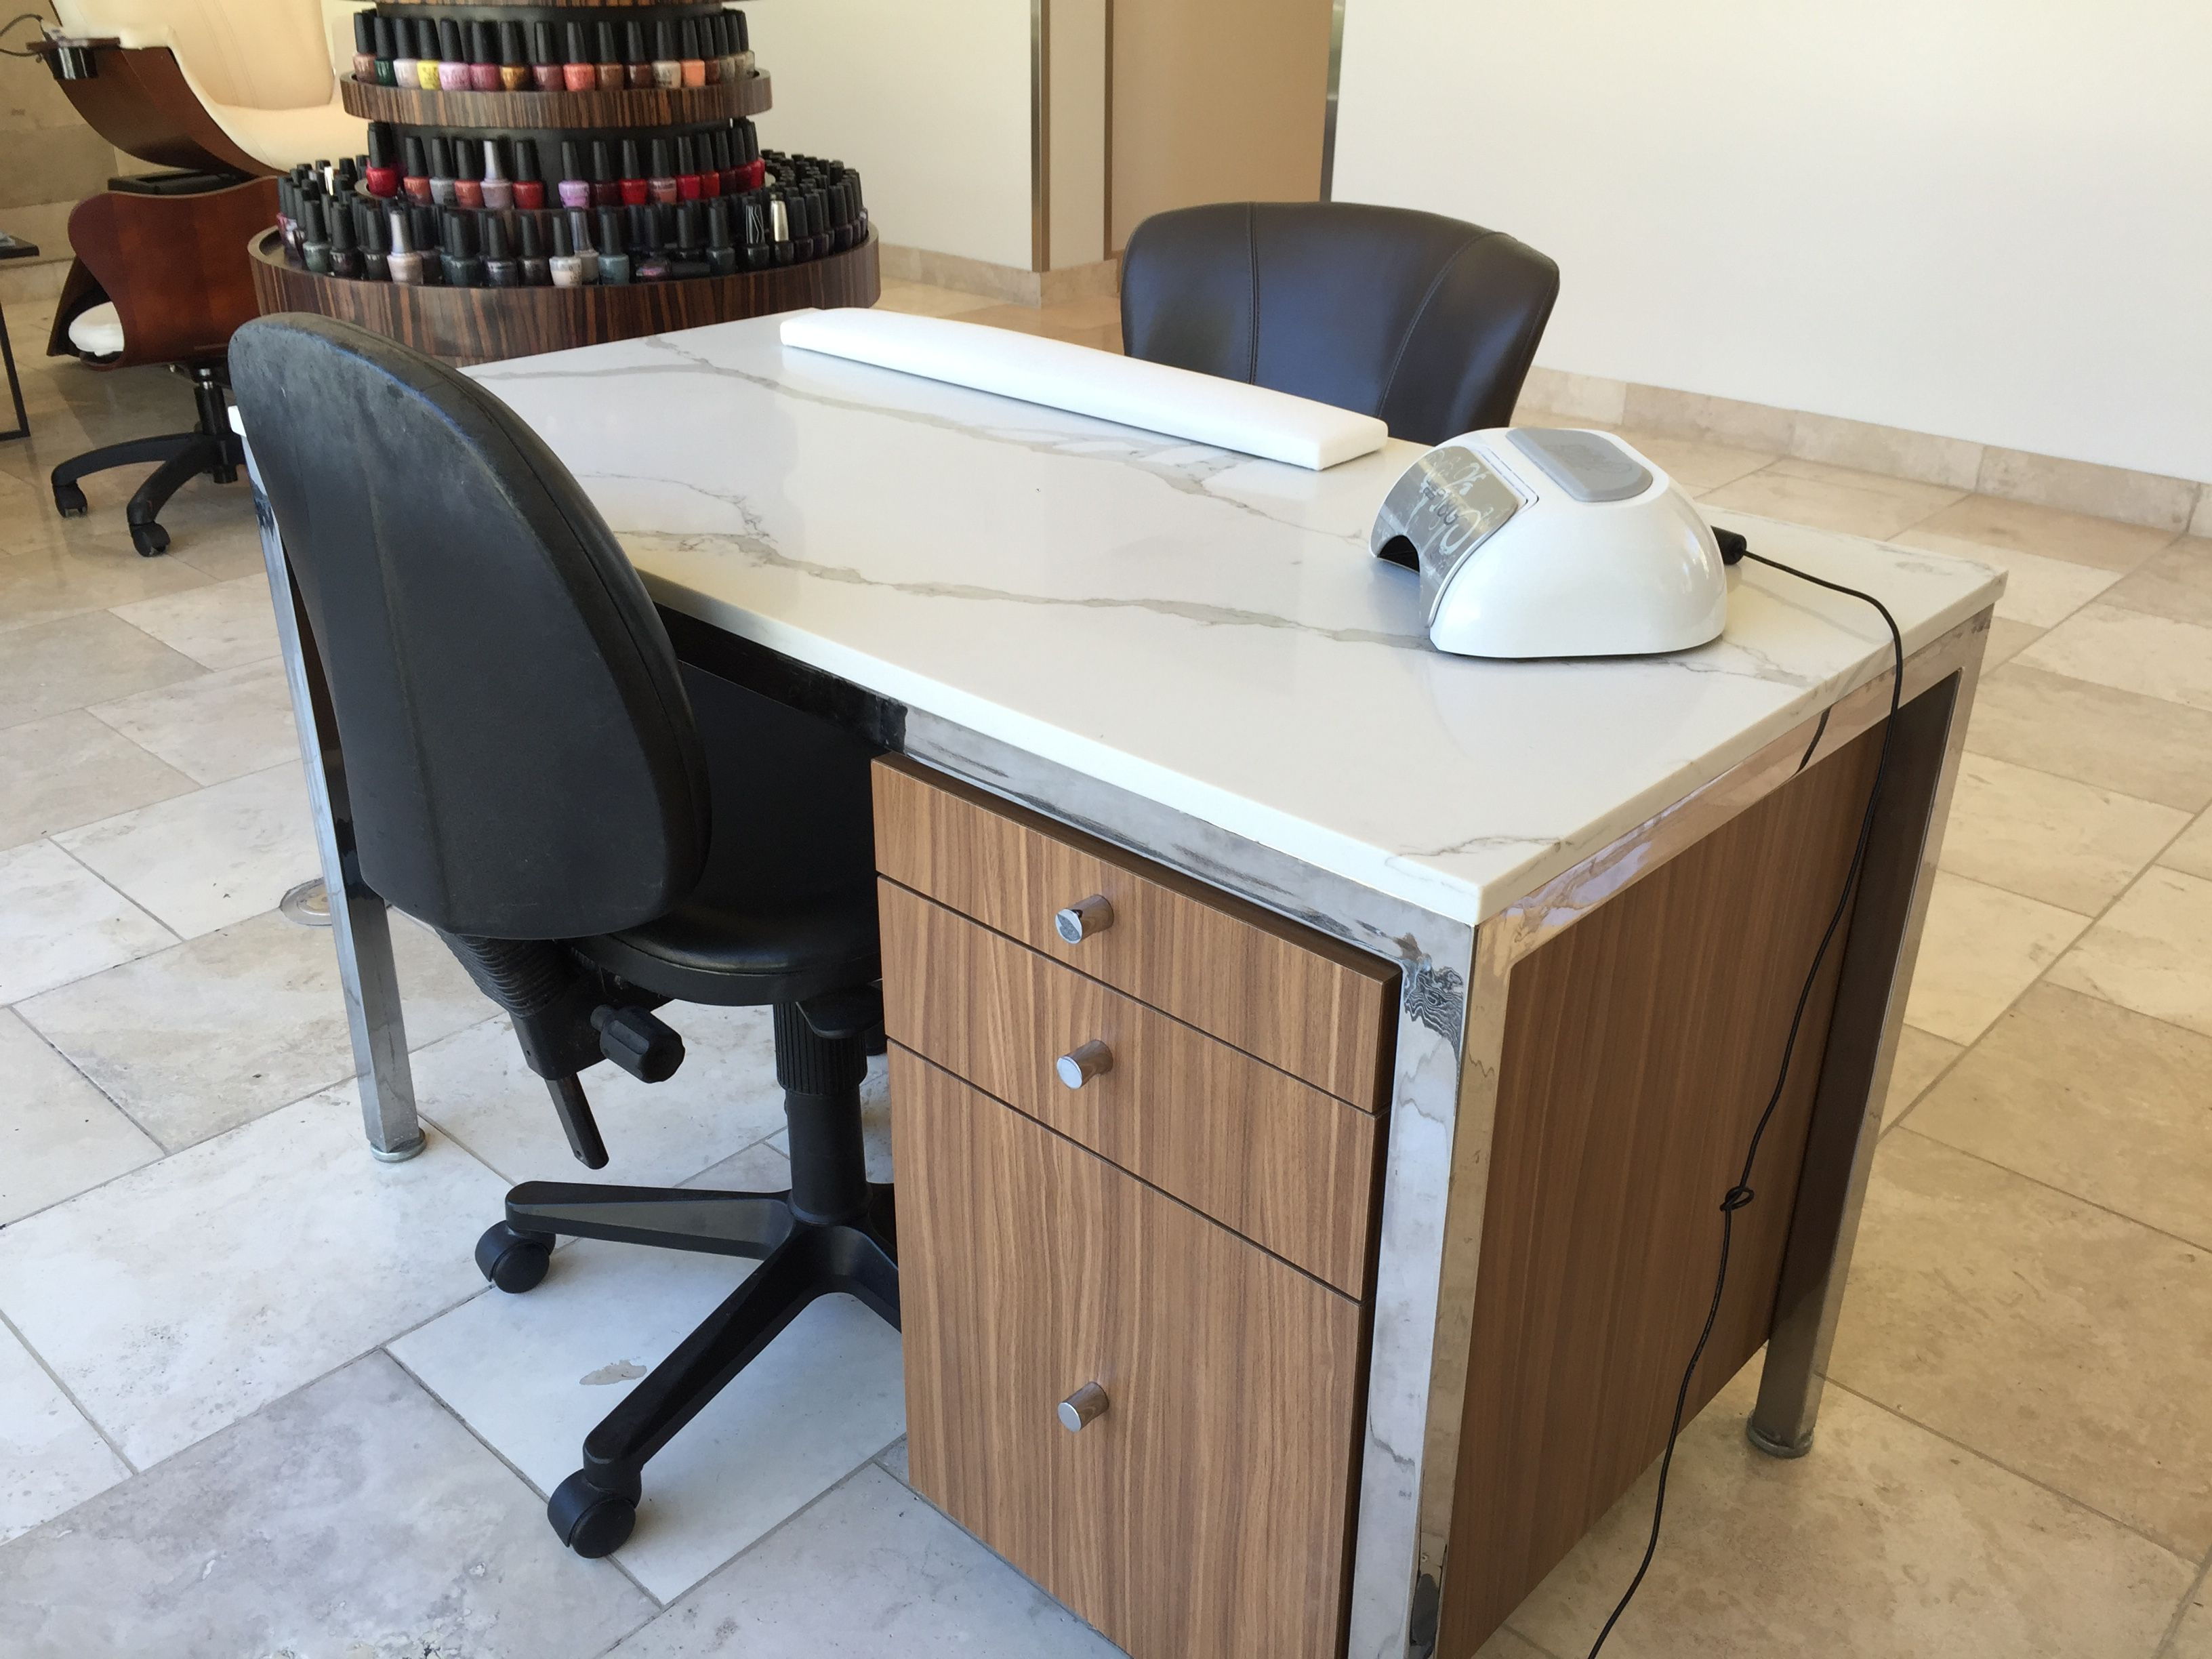 NQ06 countertop in use in a hair salon. Prior to approval a hair coloring sample was left on the countertop for three days, which did not stain! #Quartz #countertop #Daltile #slab